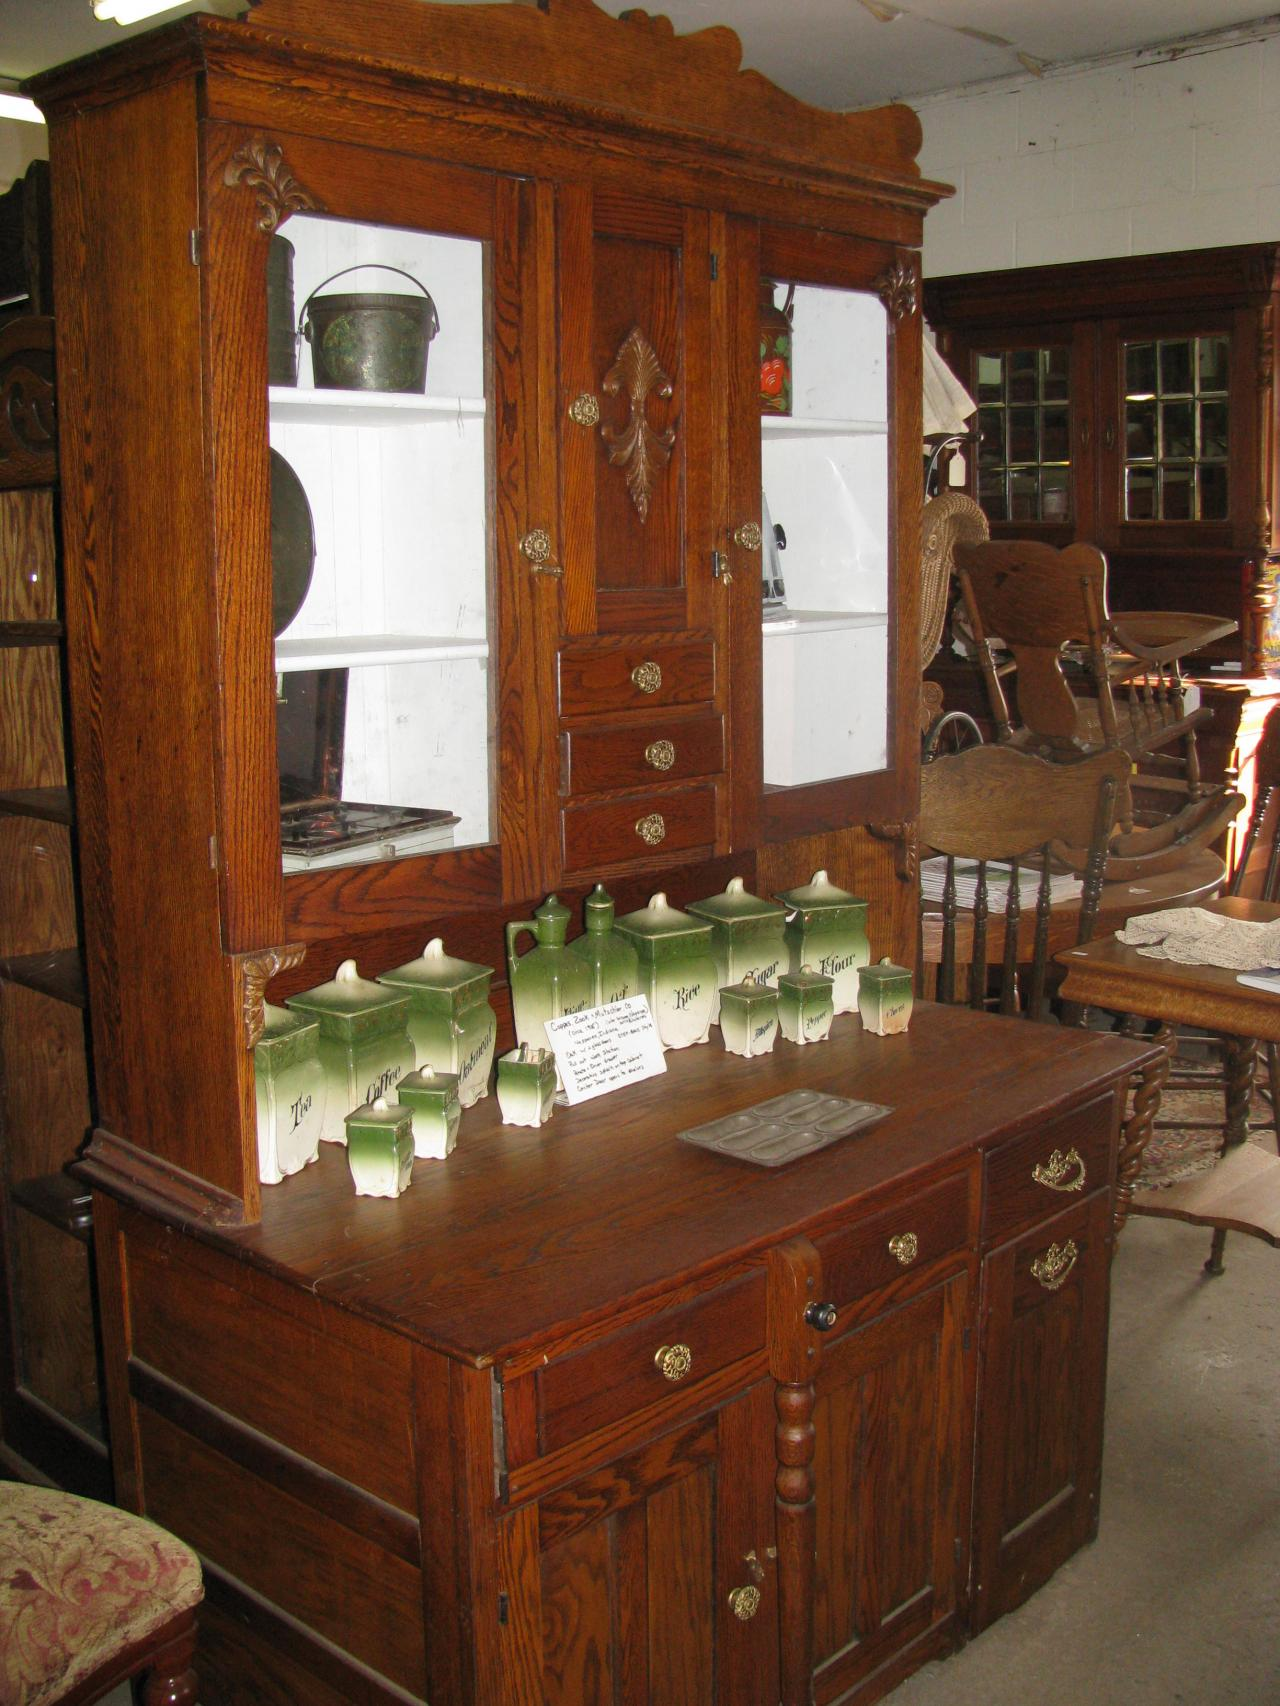 Bakeru0027s Cabinet Circa 1905 Coppes Zook Matschler Co; Daughter Size Sellers  ...